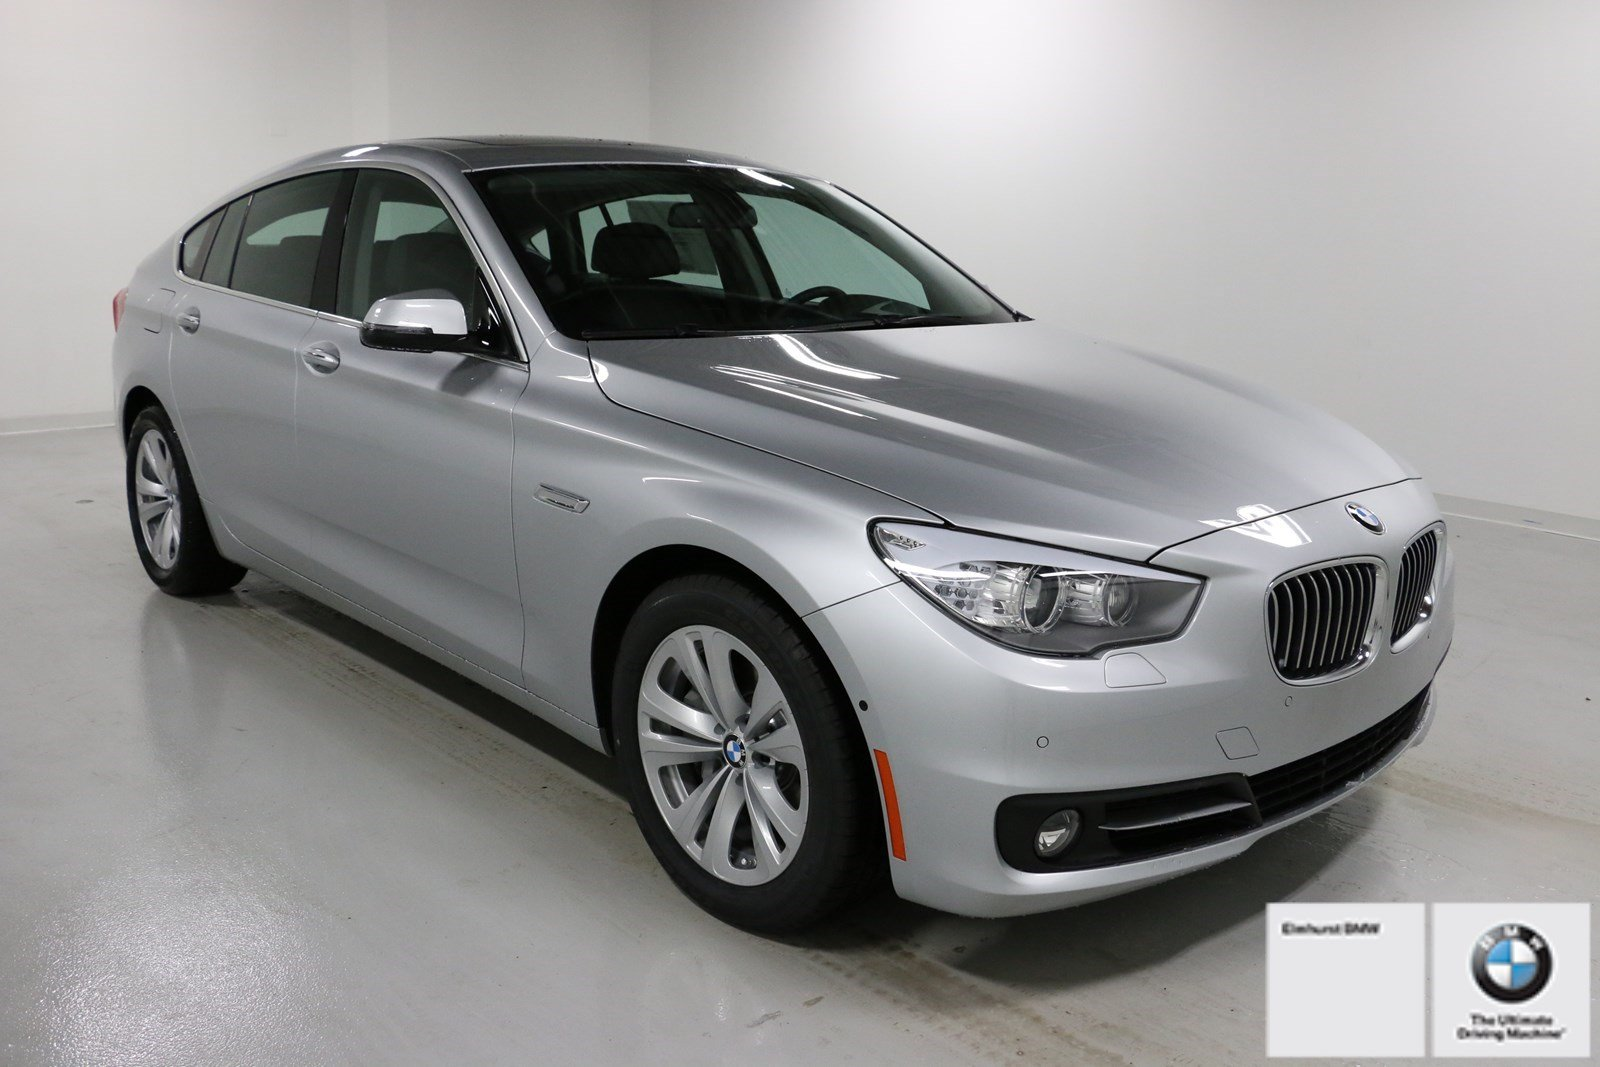 new 2017 bmw 5 series 535i xdrive gran turismo hatchback in elmhurst b7648 elmhurst bmw. Black Bedroom Furniture Sets. Home Design Ideas